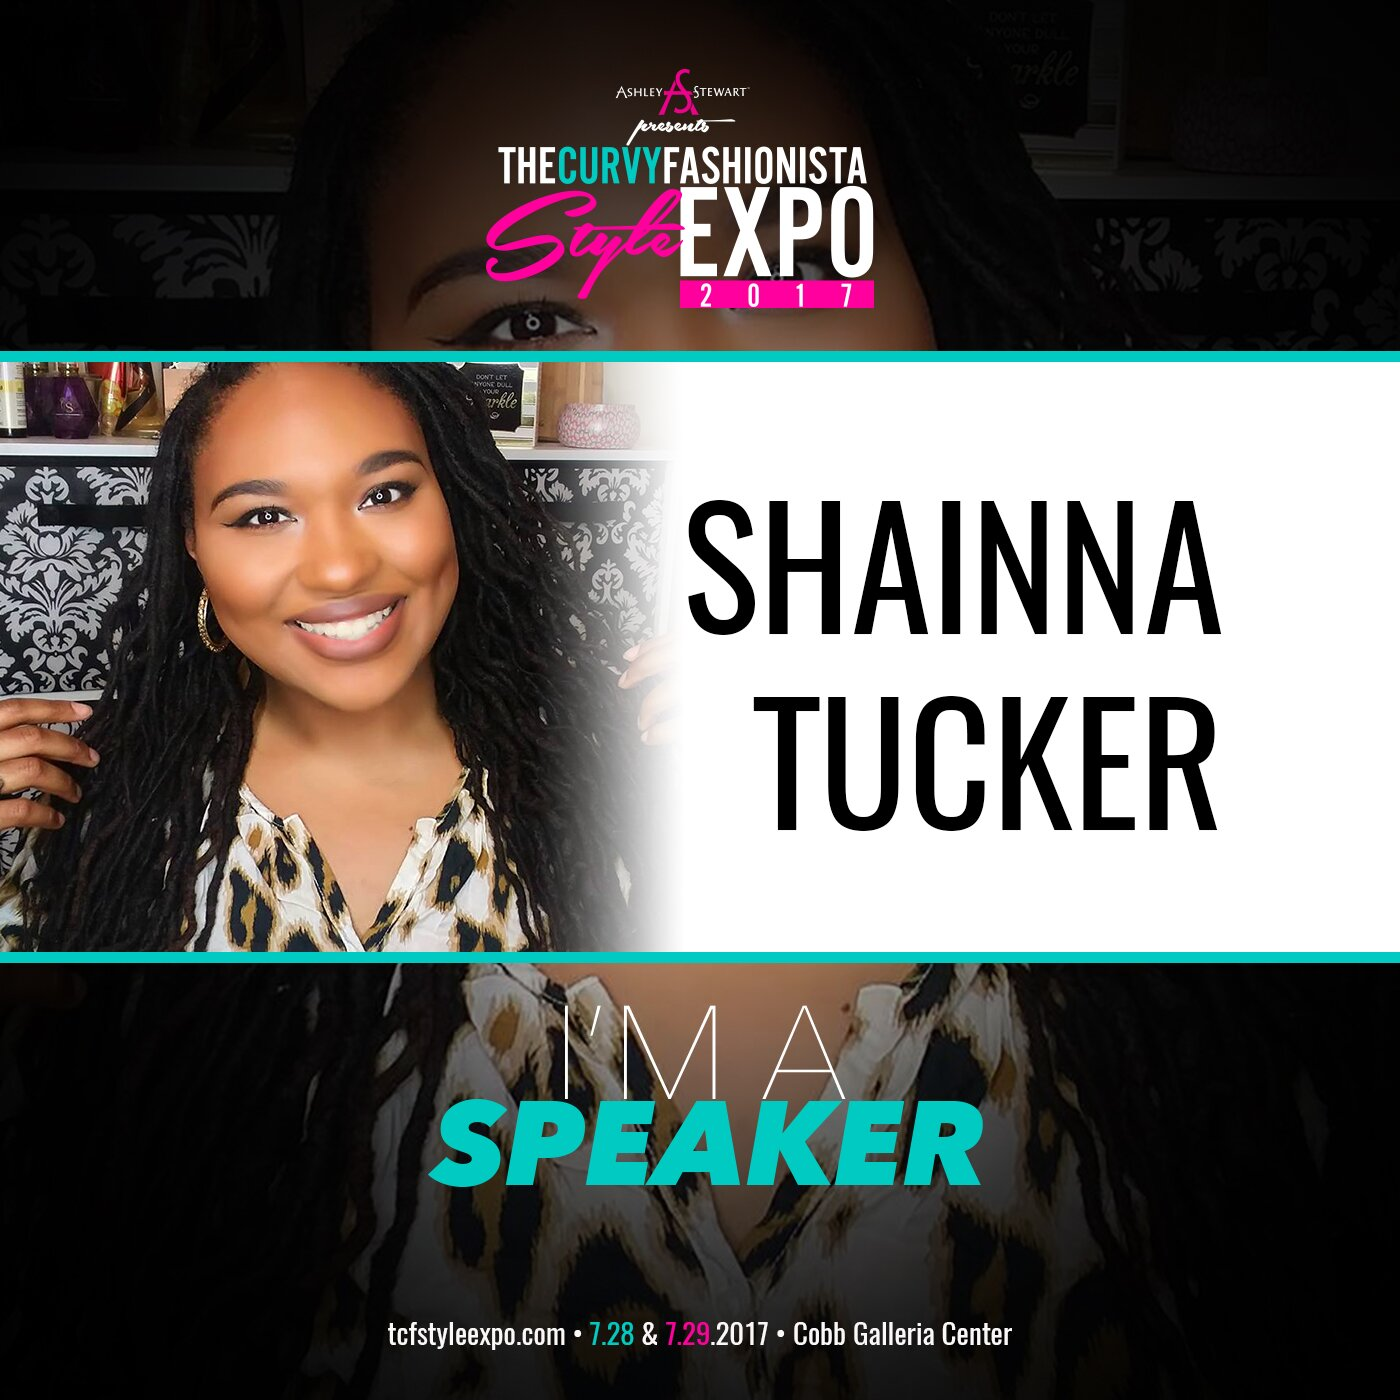 Speaking at The Curvy Fashionista Style Expo